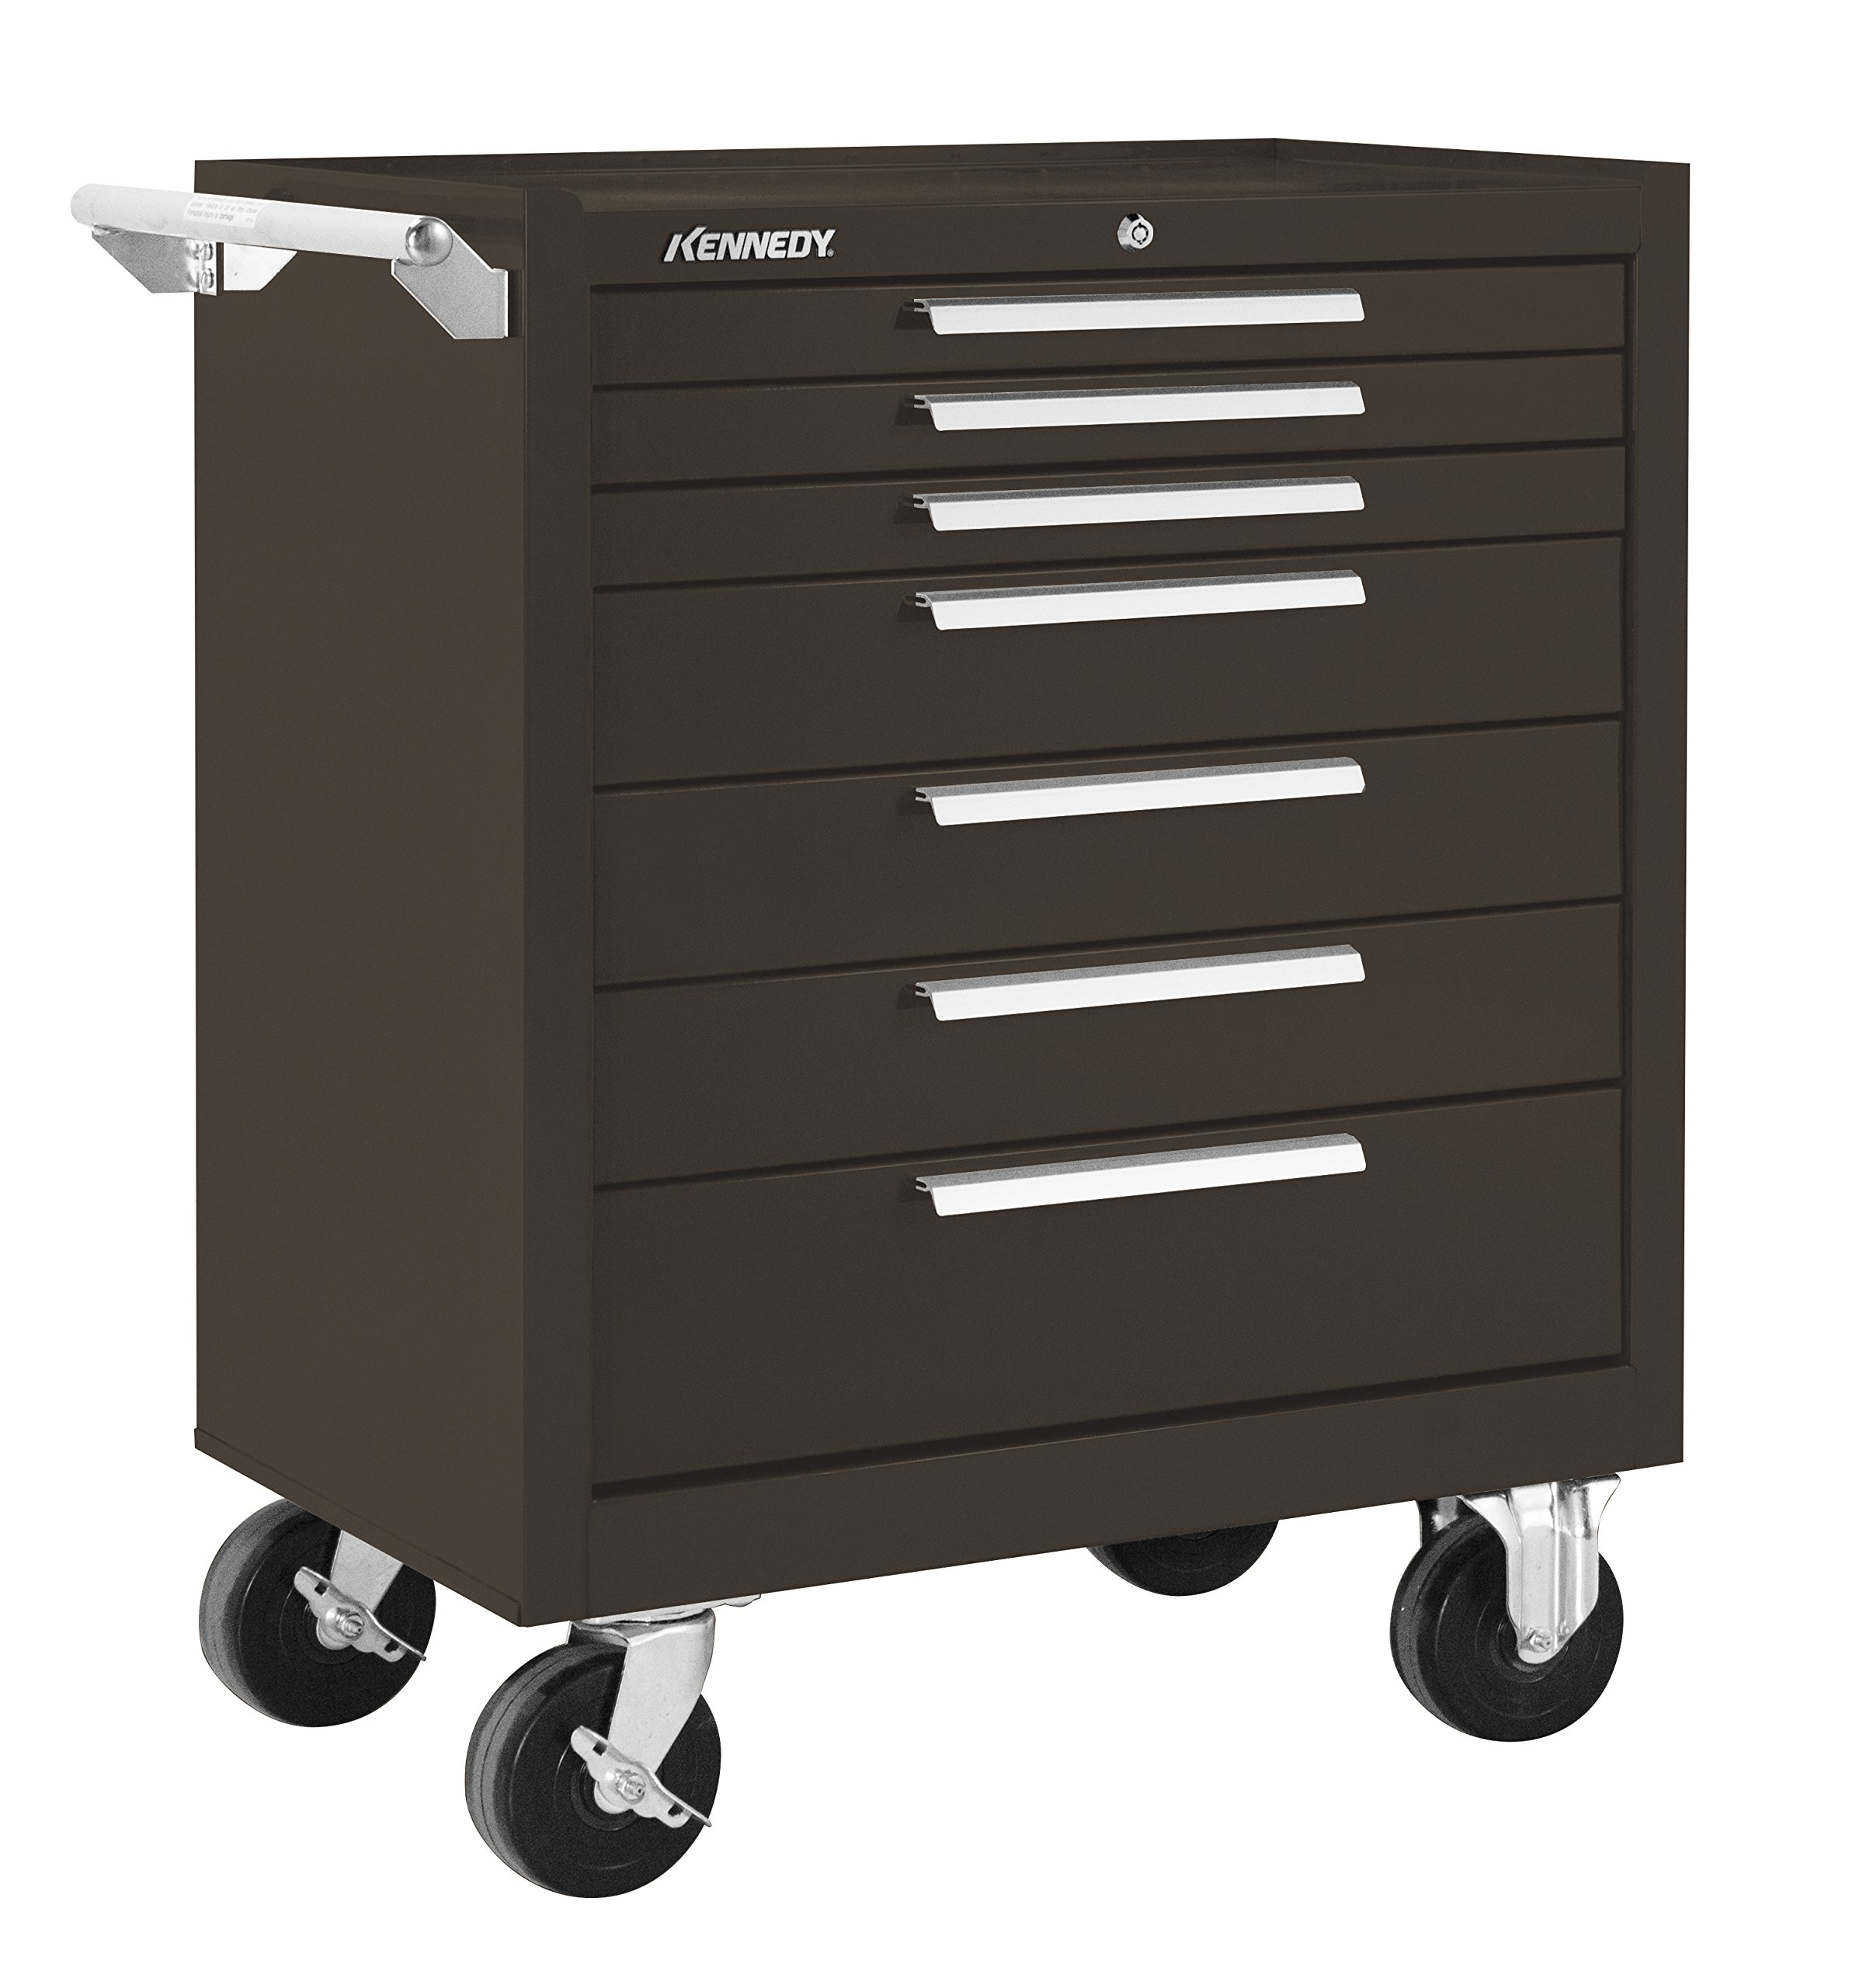 Kennedy Manufacturing 297Xb 7-Drawer Roller Tool Cabinet With Chest Wheels And Ball-Bearing Slides, Brown Wrinkle